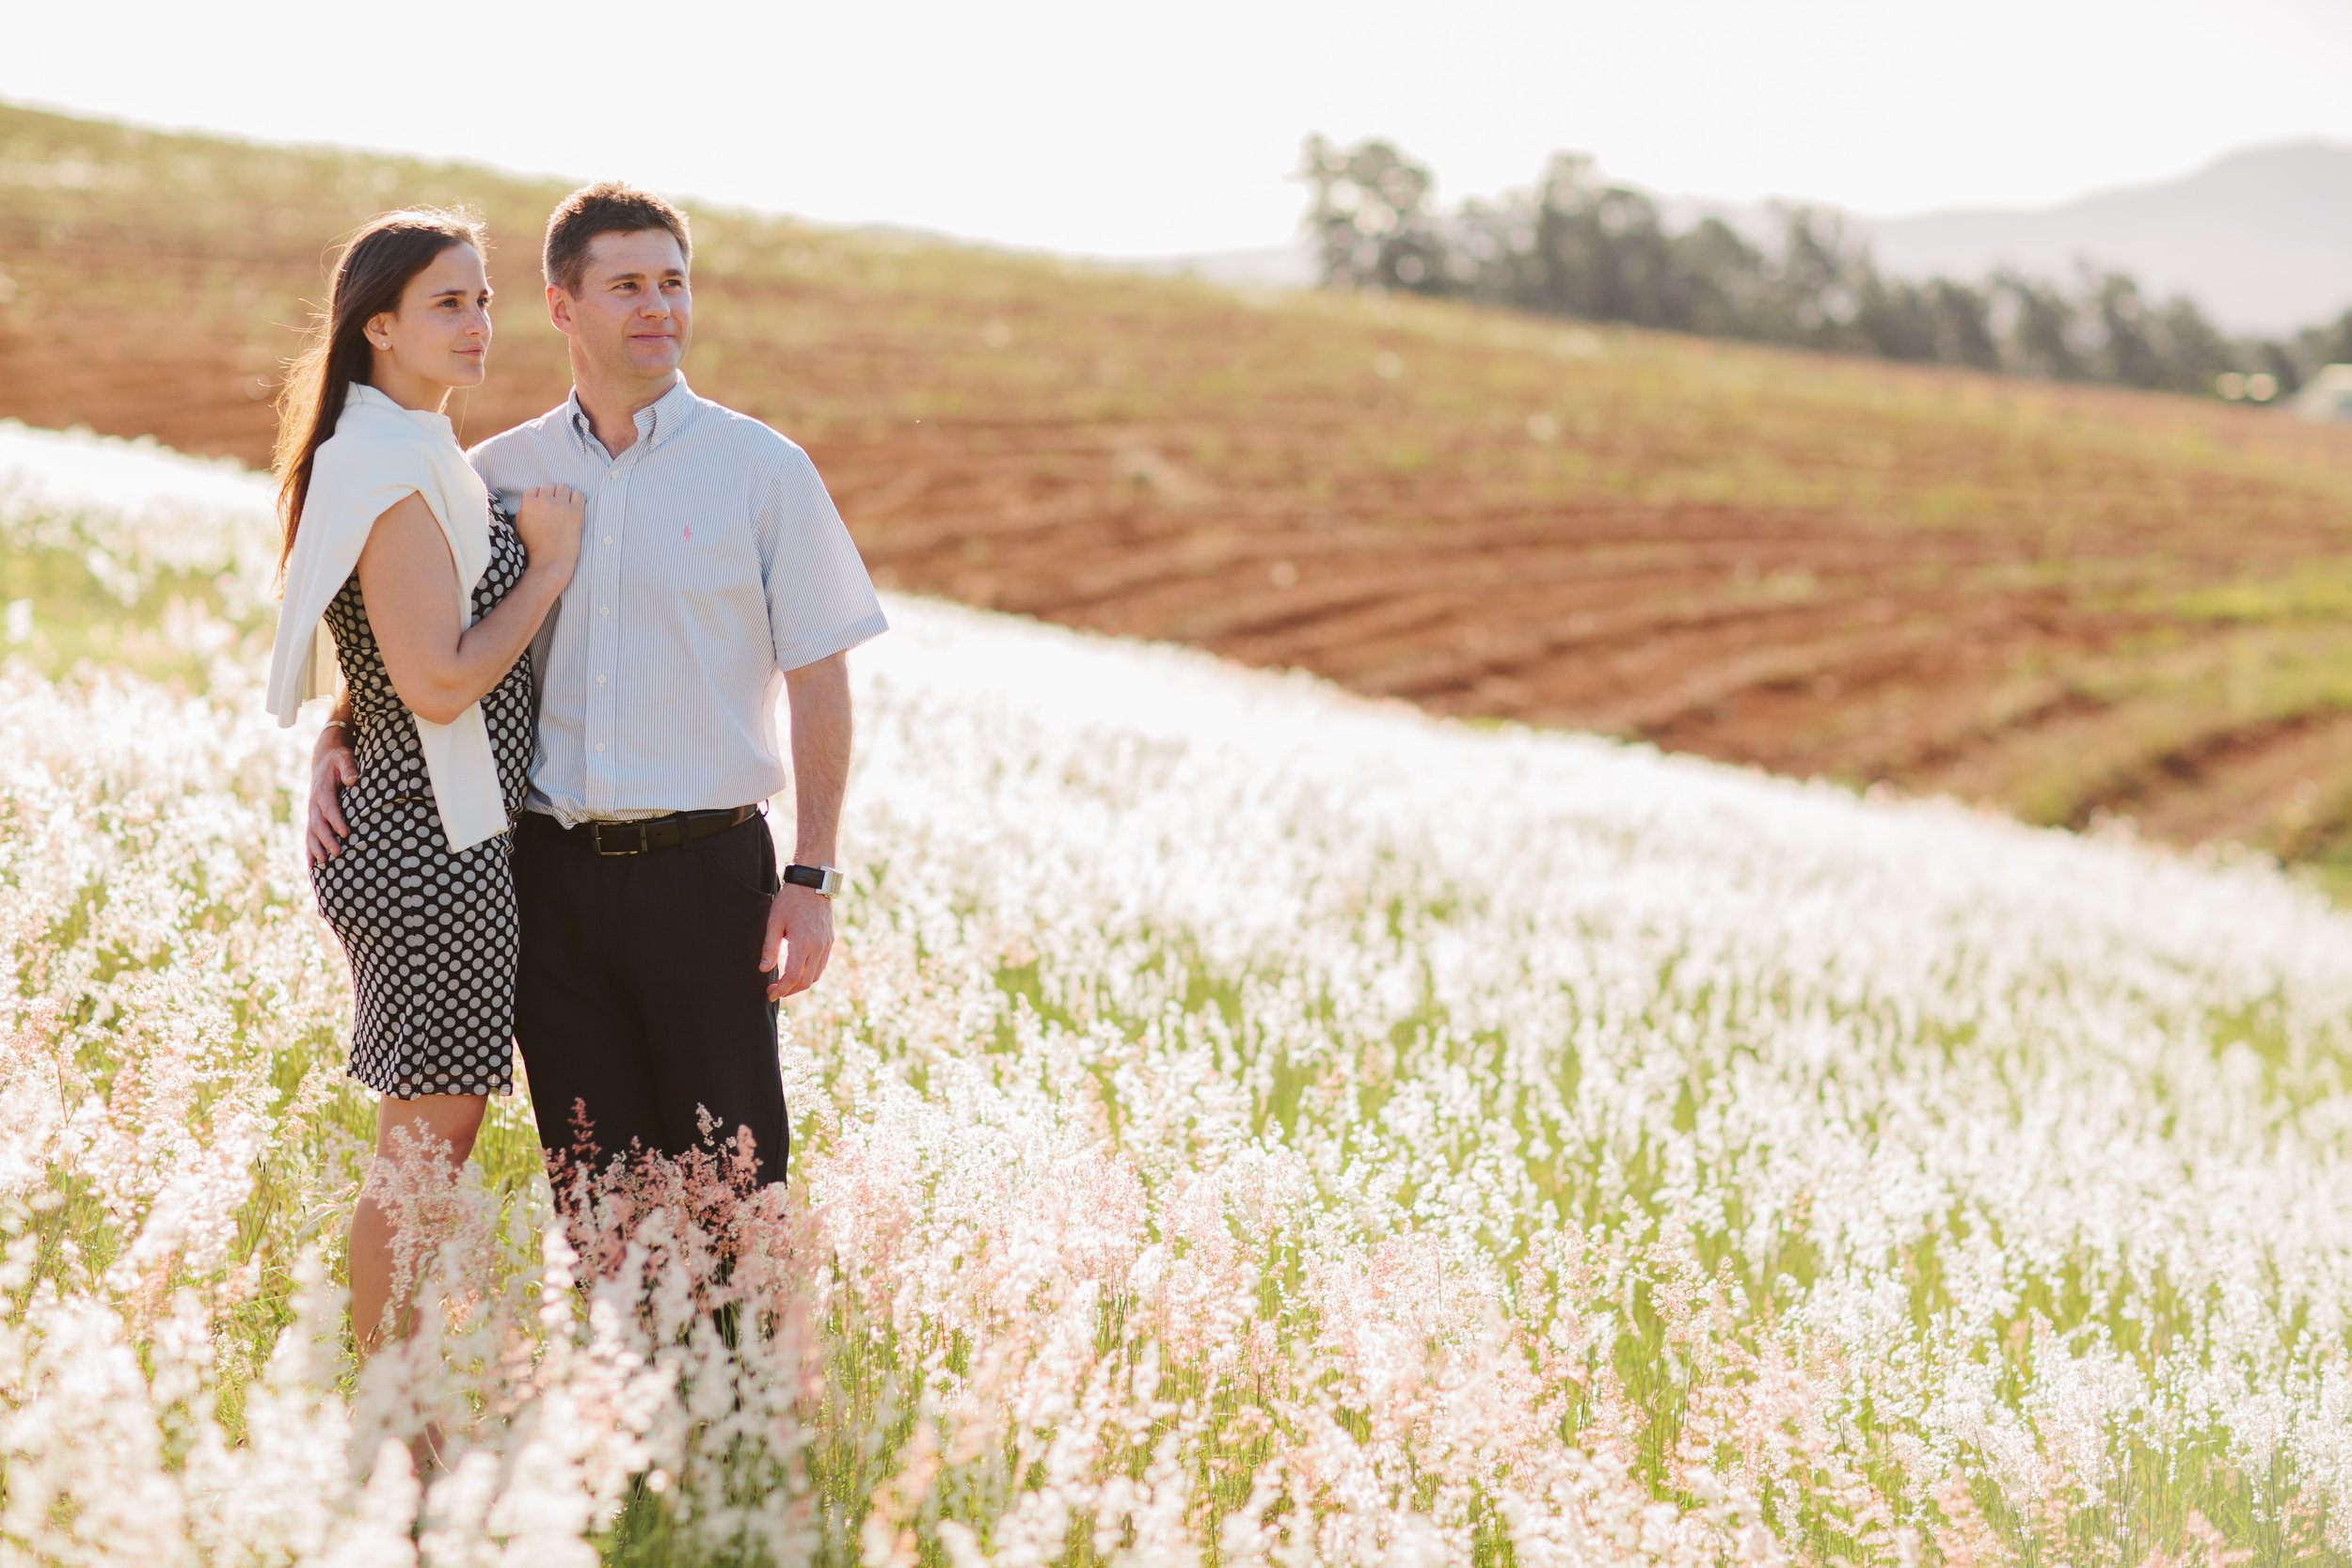 Engagement shoot on foot of Hidden Valley wine farm's hills